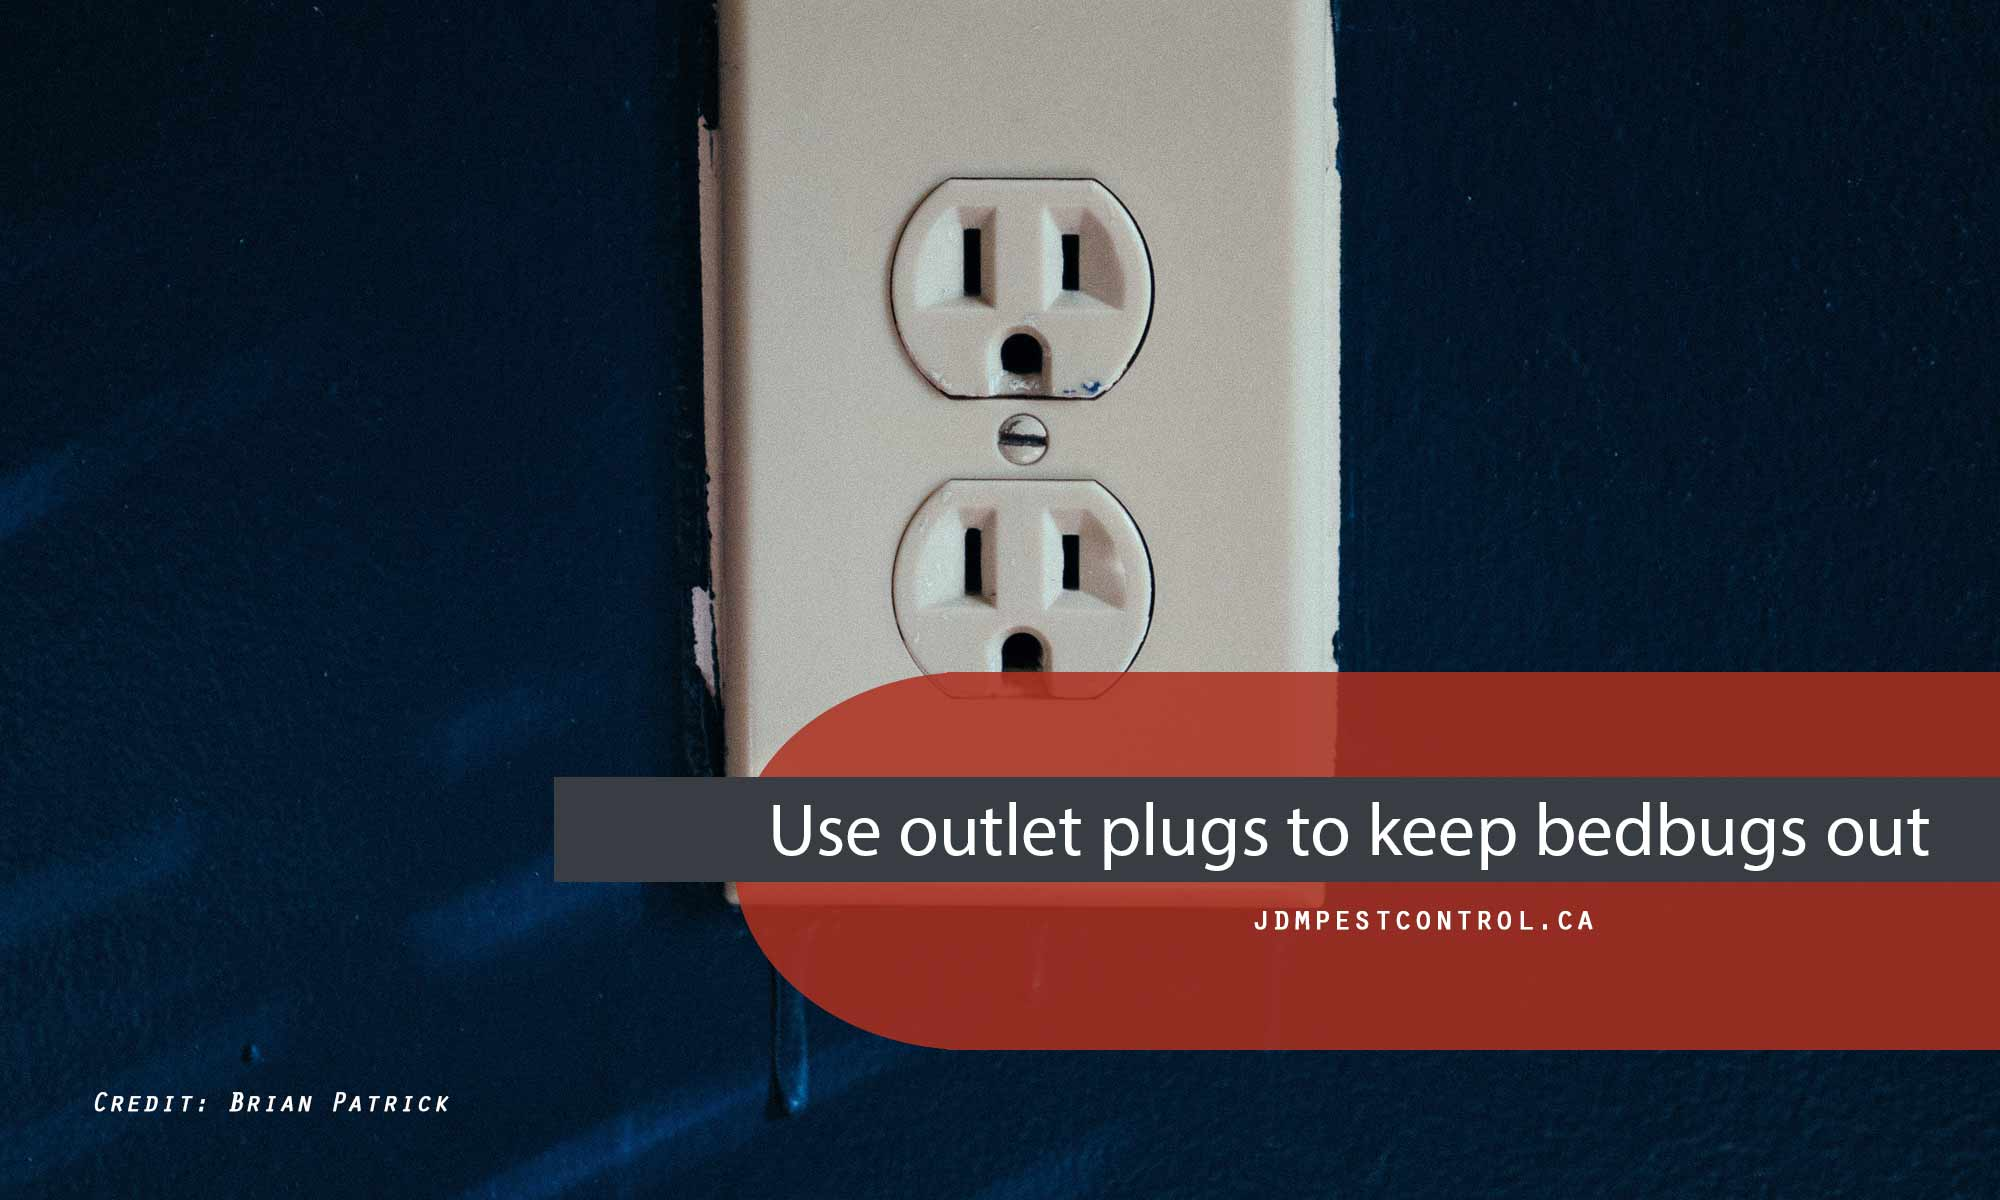 Use outlet plugs to keep bedbugs out.